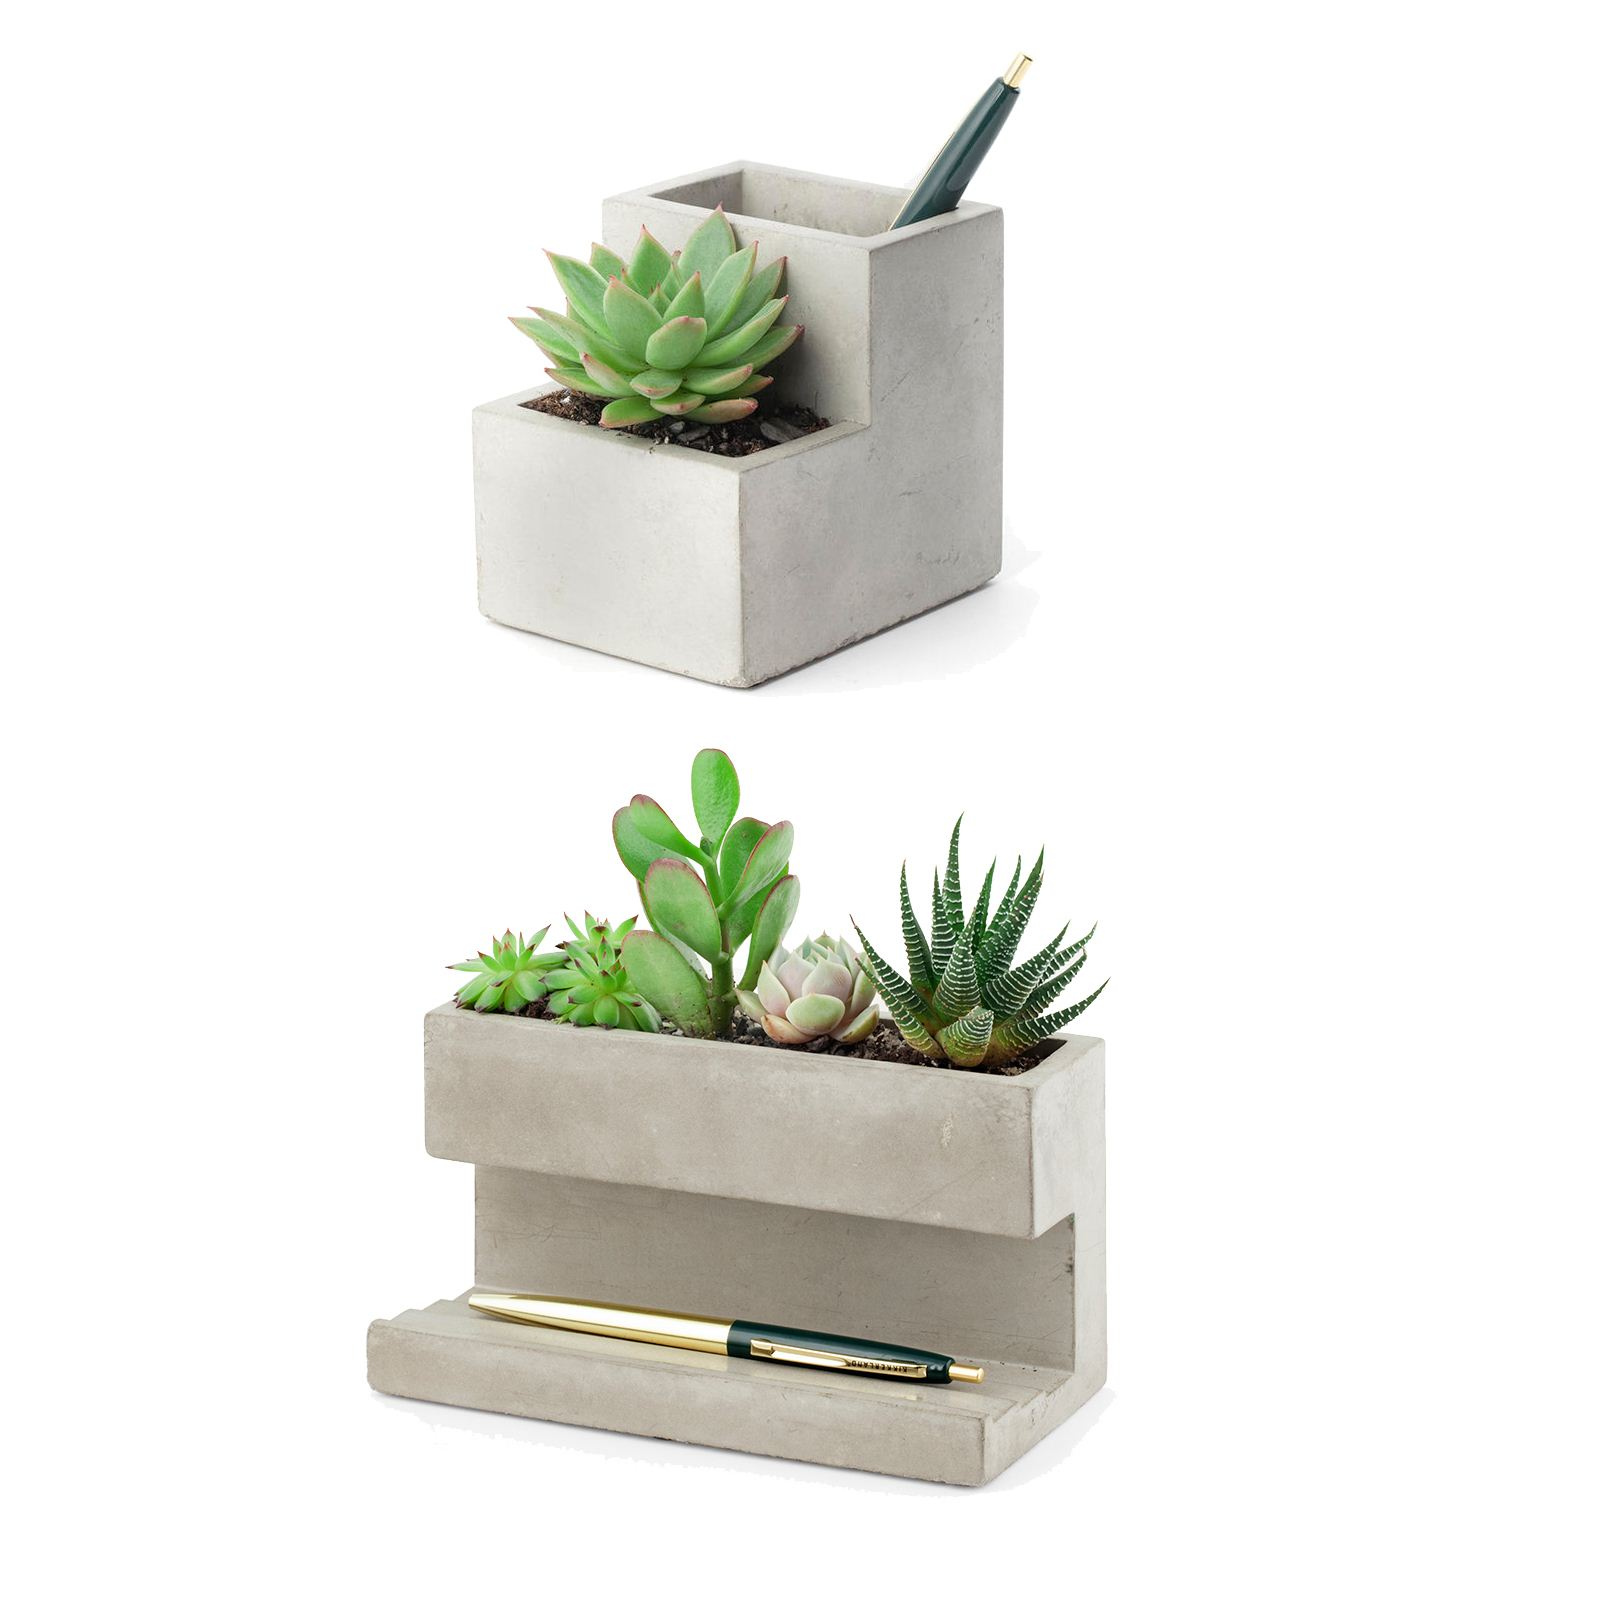 Kikkerland Concrete Planter and Pen Holder Green Plant Desk ...